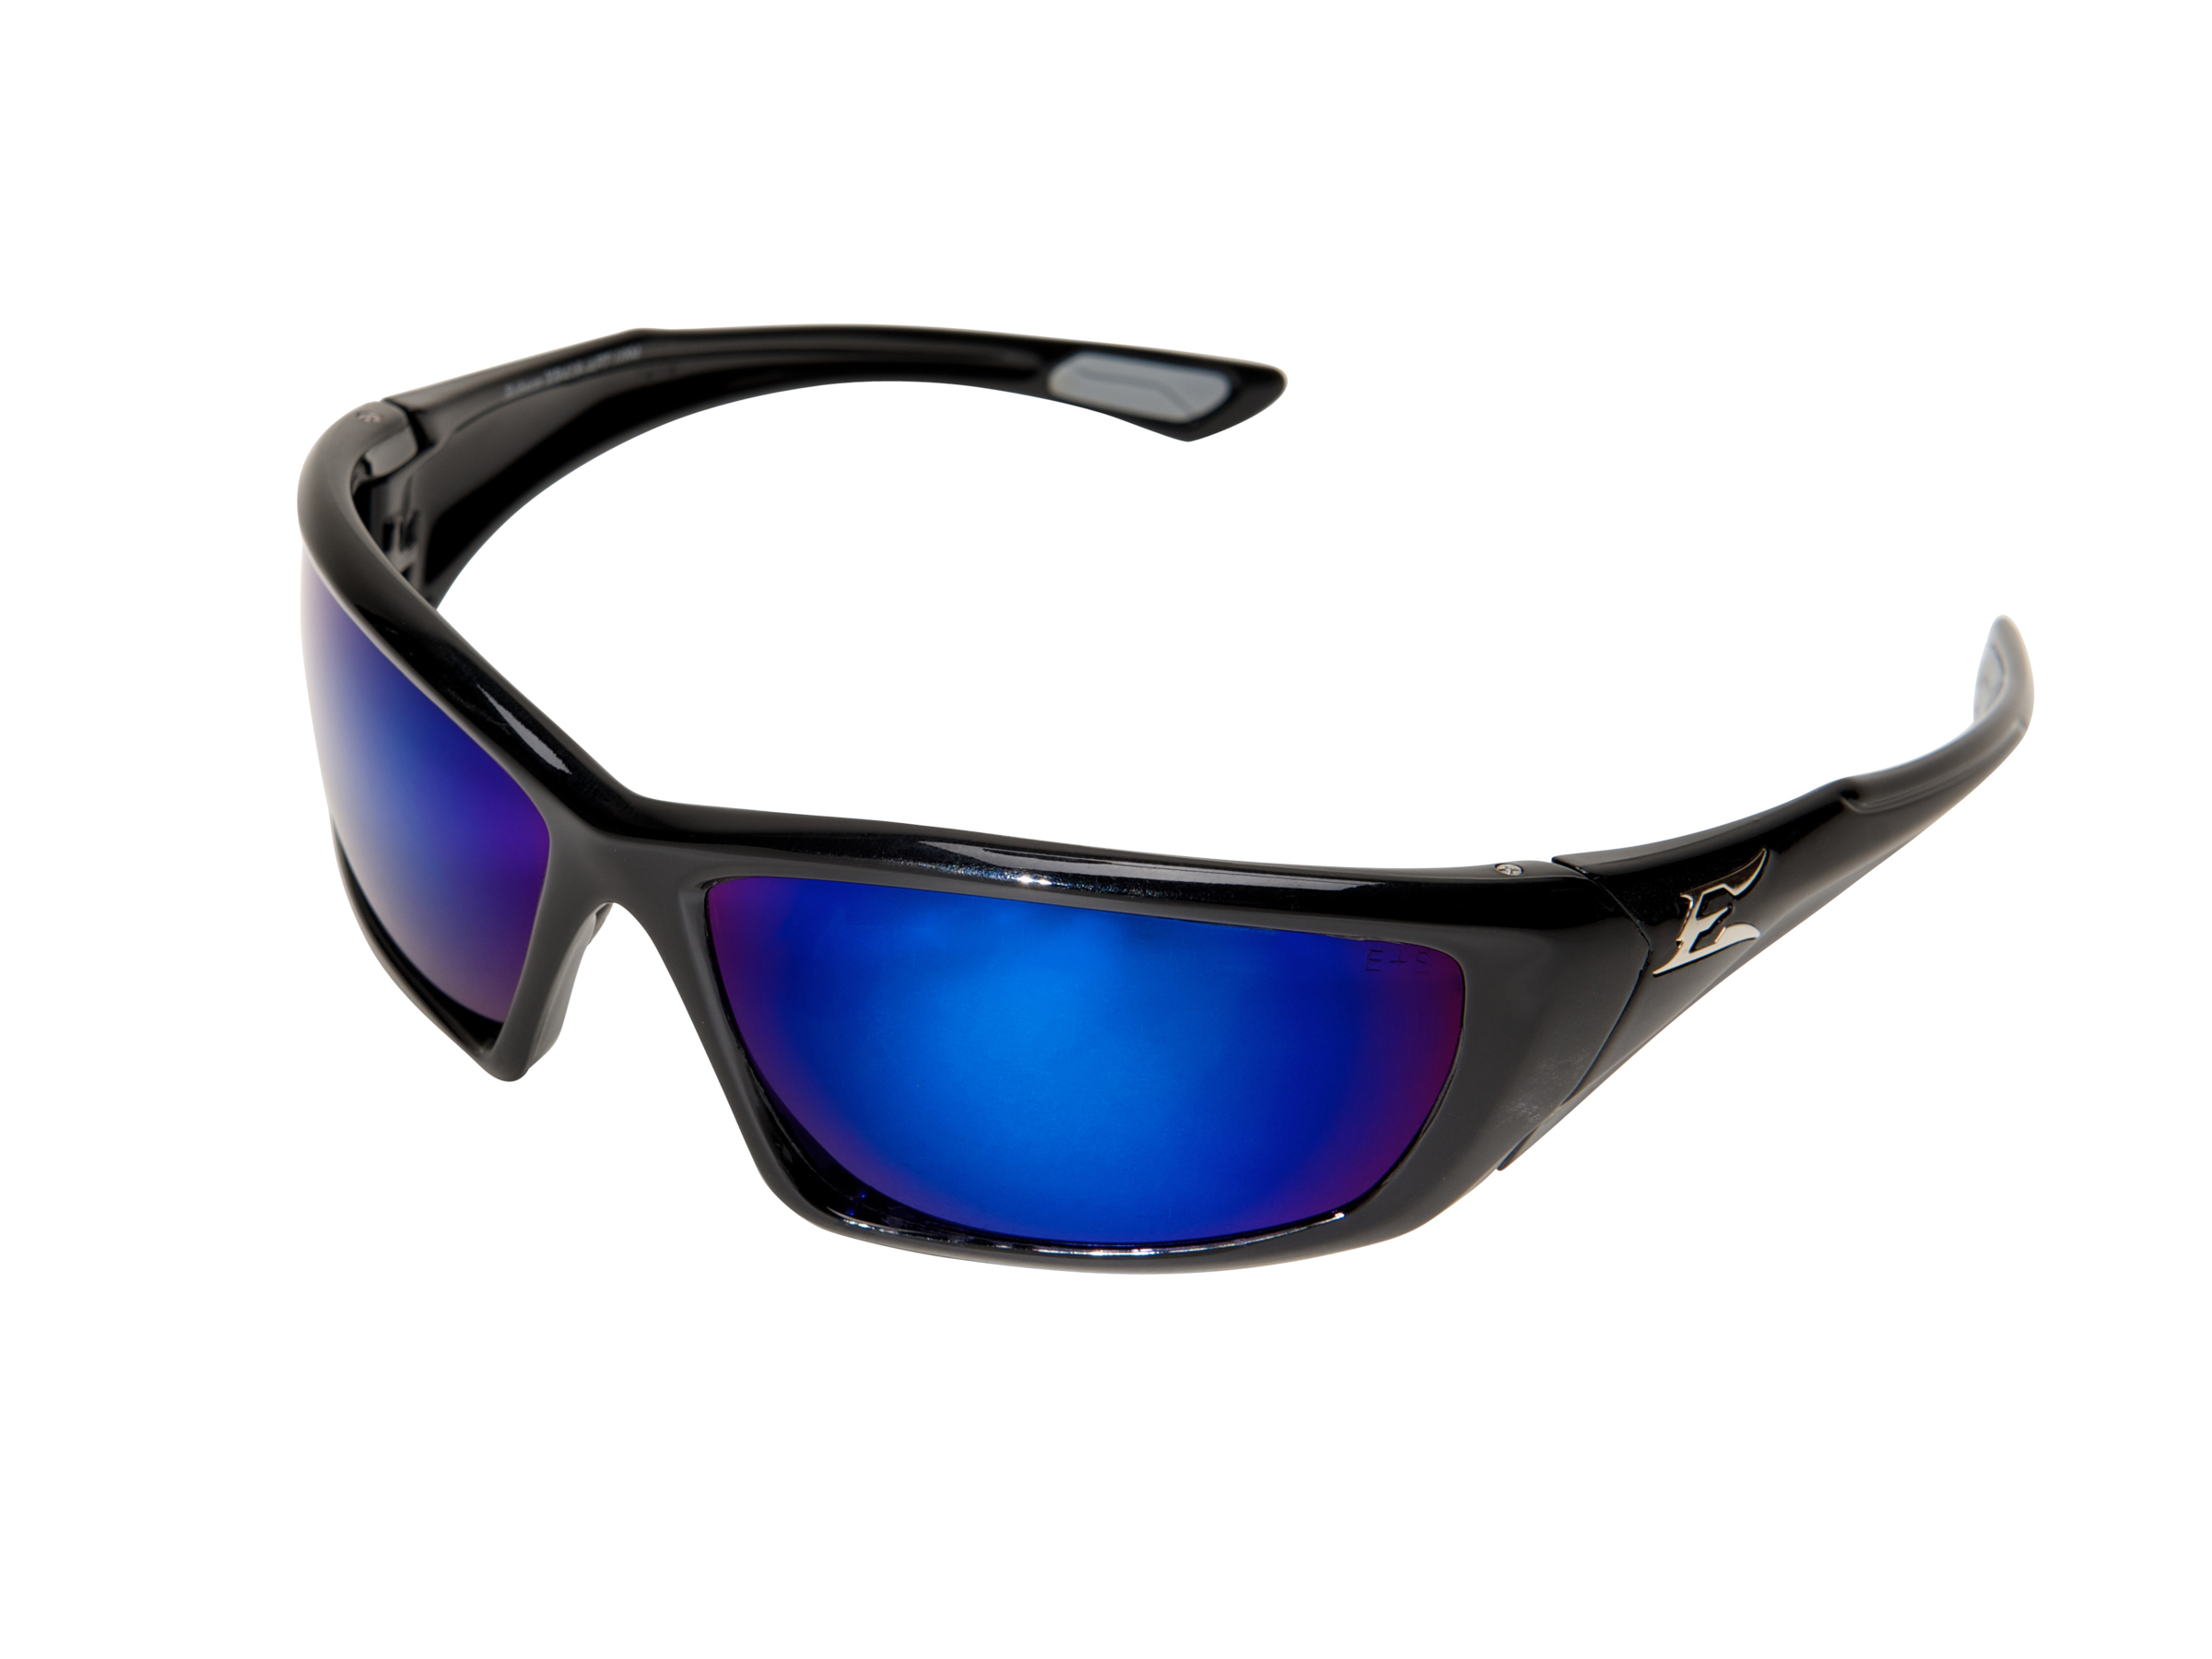 Edge Eyewear TXRAP418 Robson - Black / AP Blue Mirror Lens